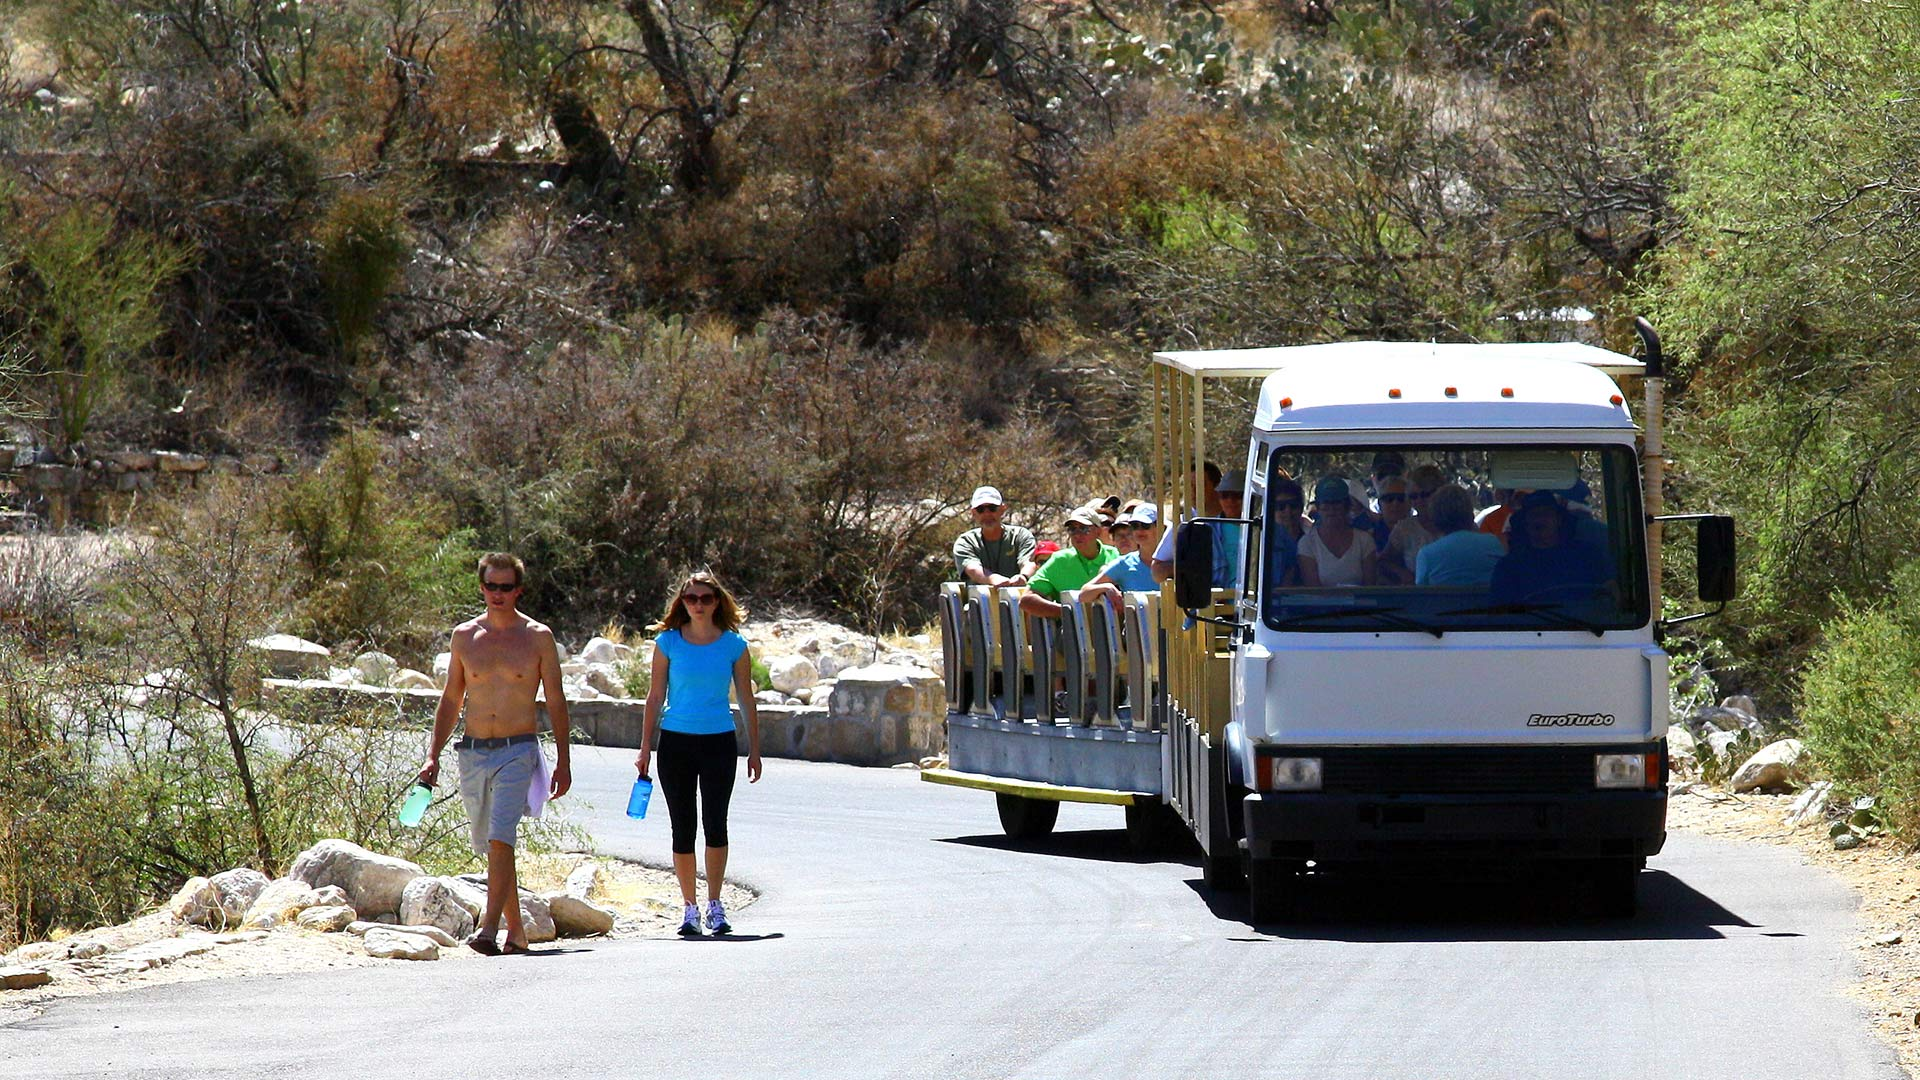 The tram at Sabino Canyon, 2011 (CC BY 2.0).